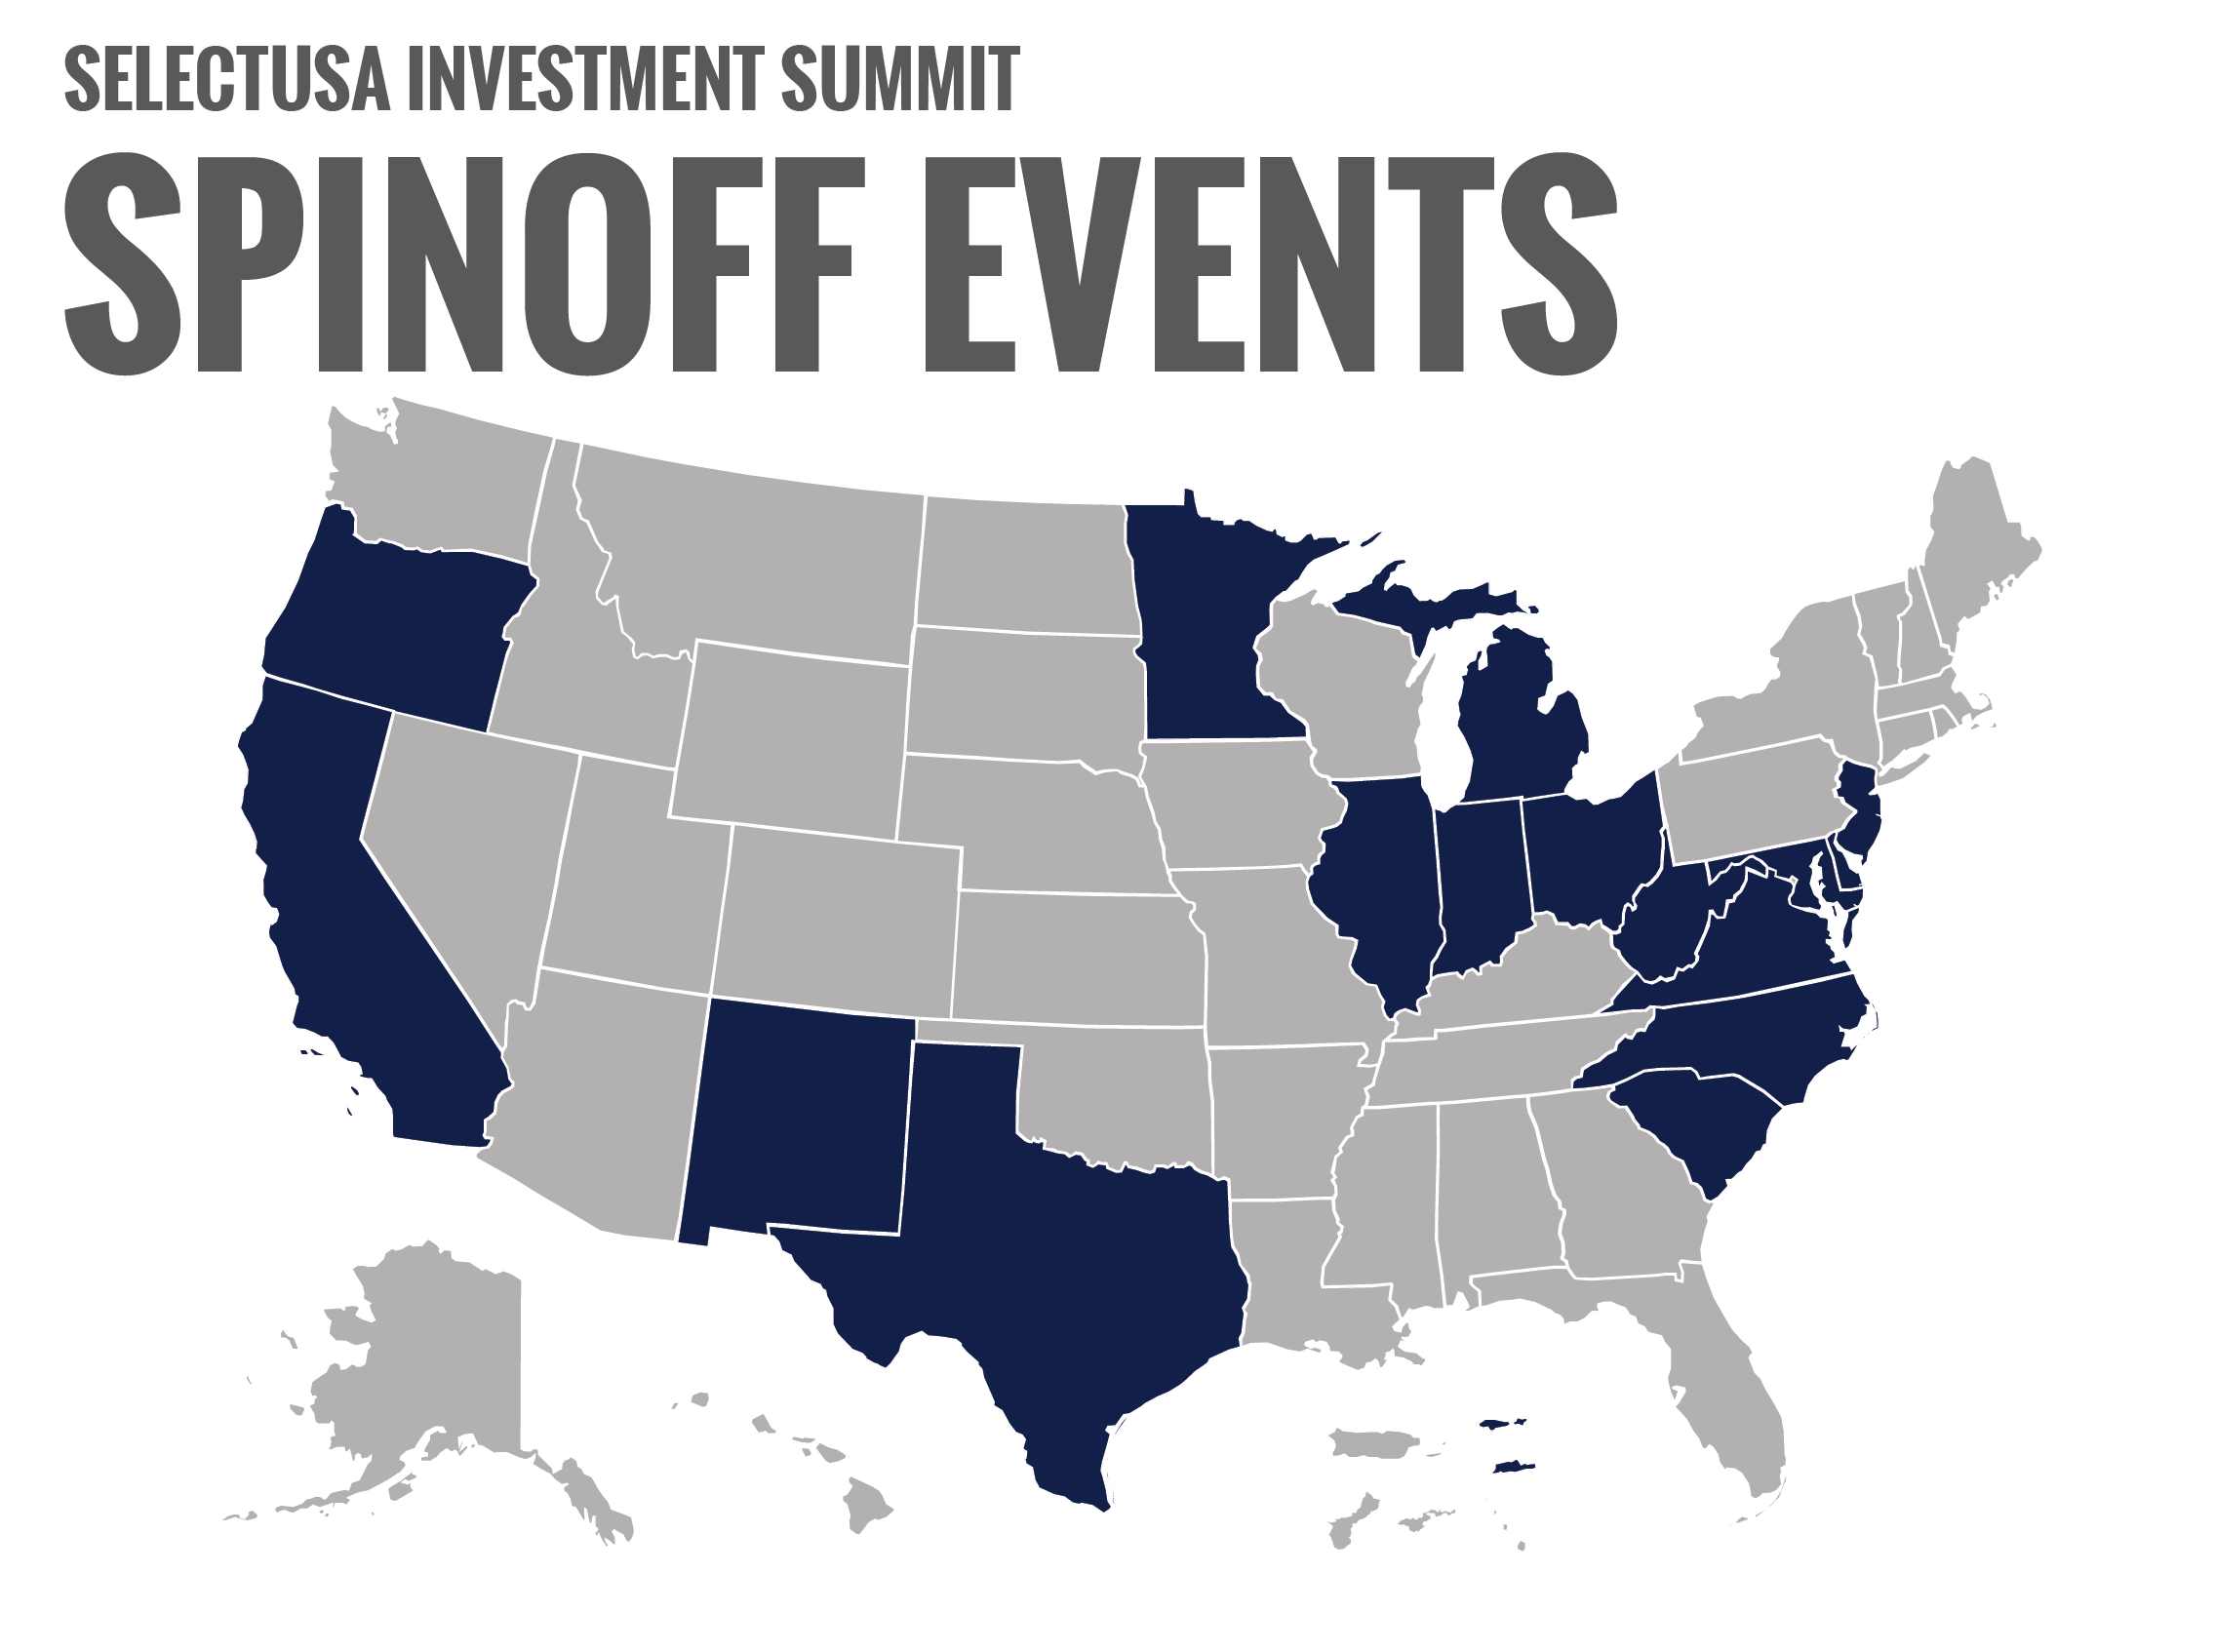 Spinoff Events Graphic